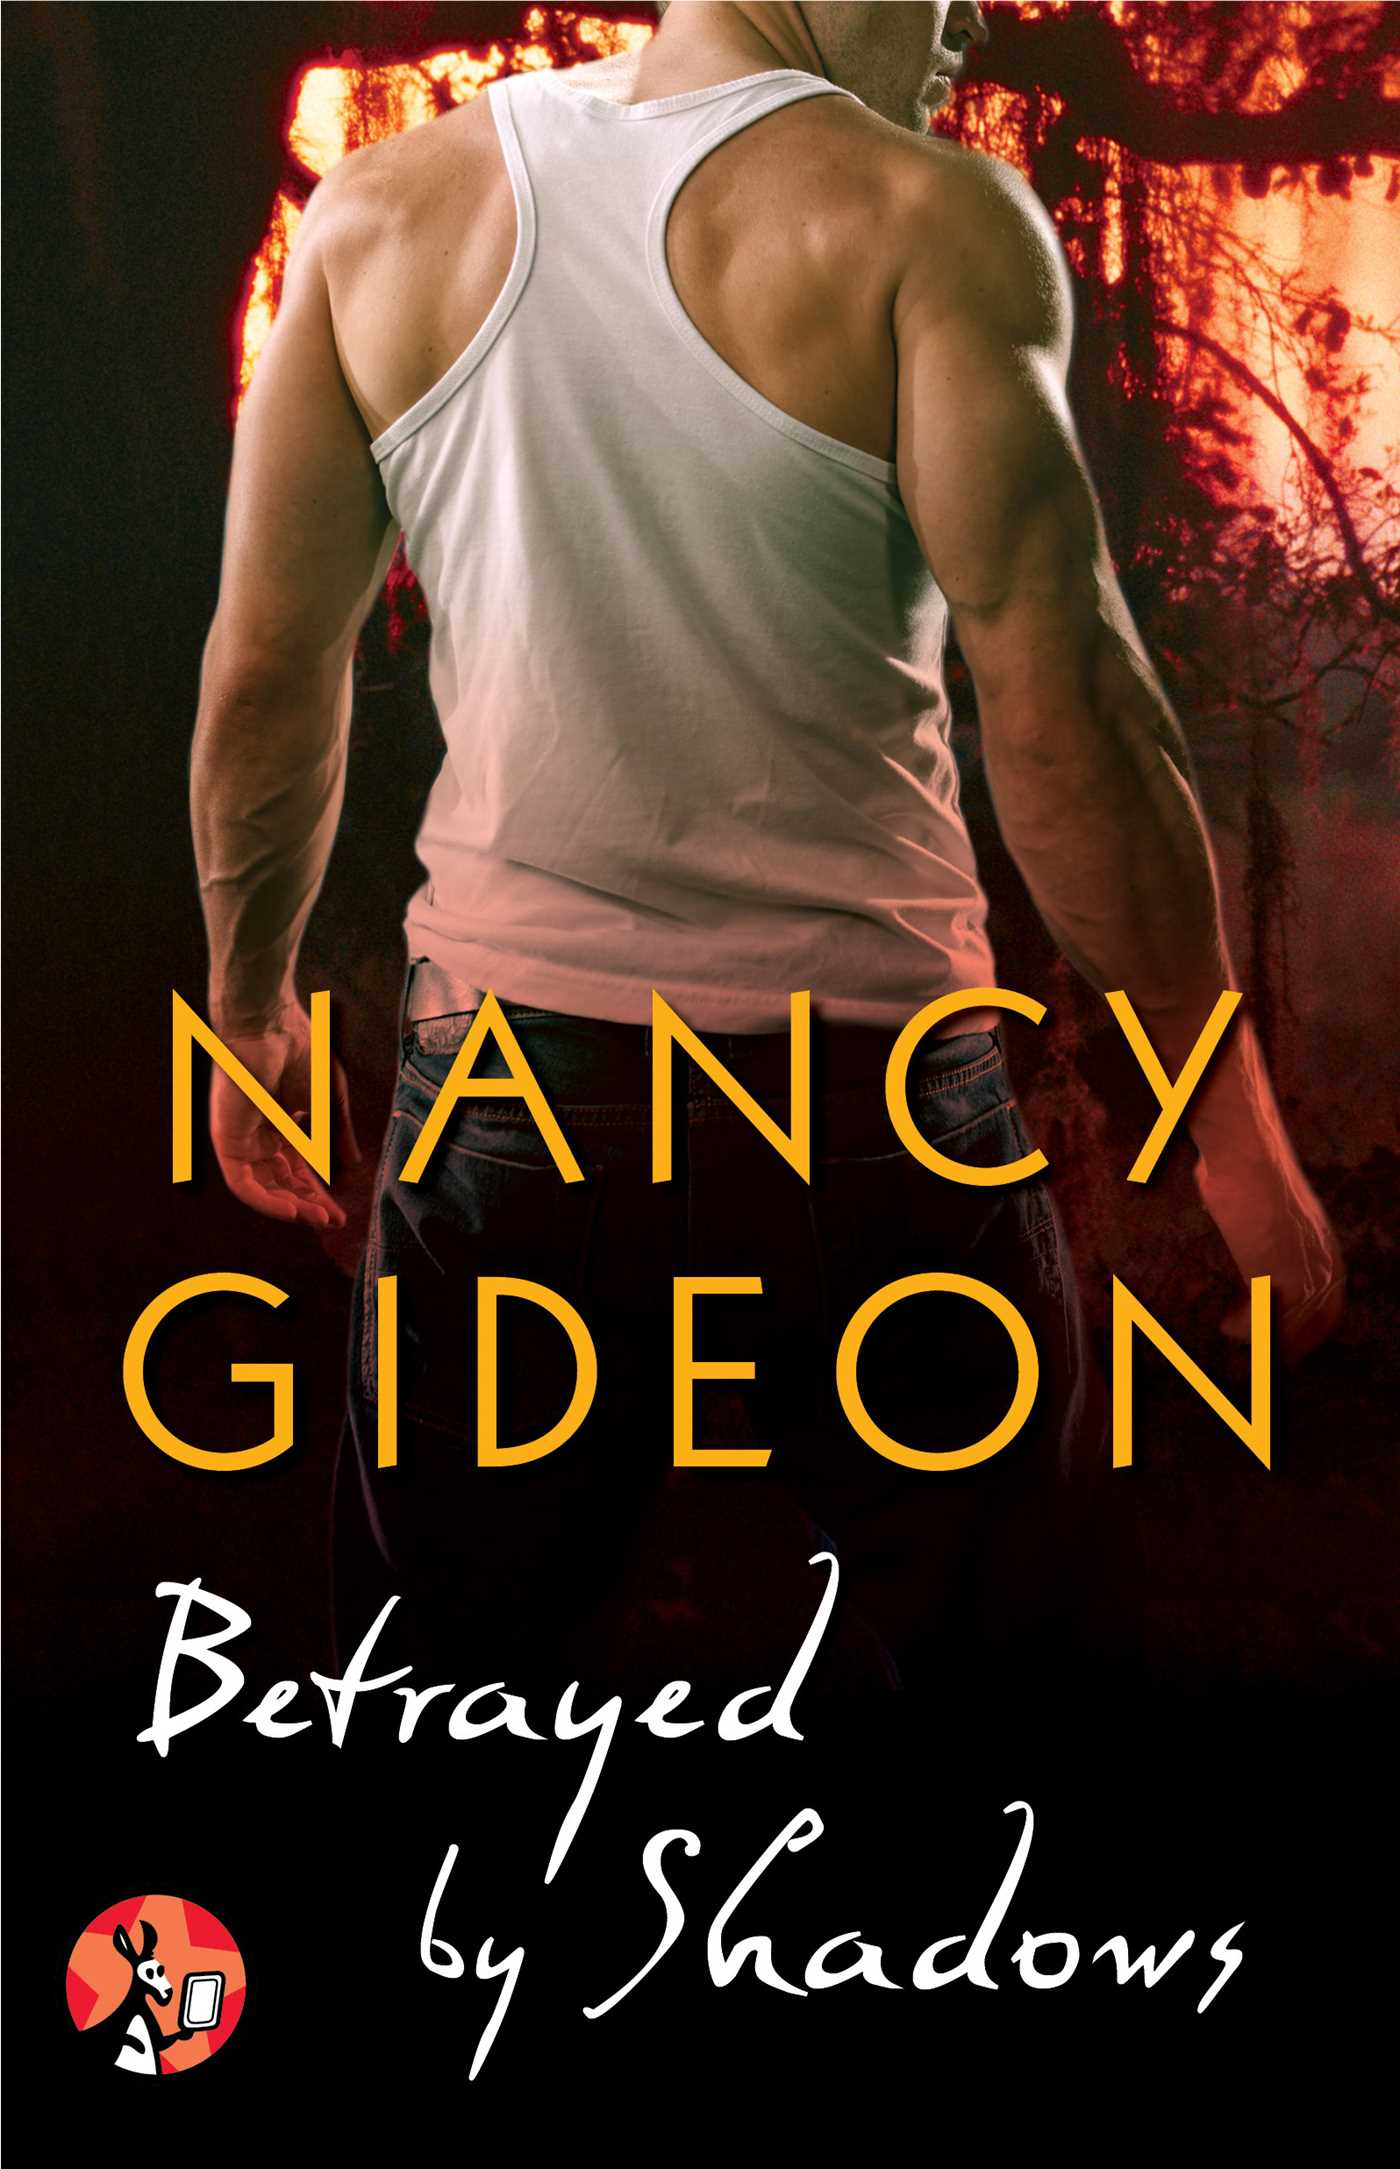 Betrayed by shadows 9781451689471 hr